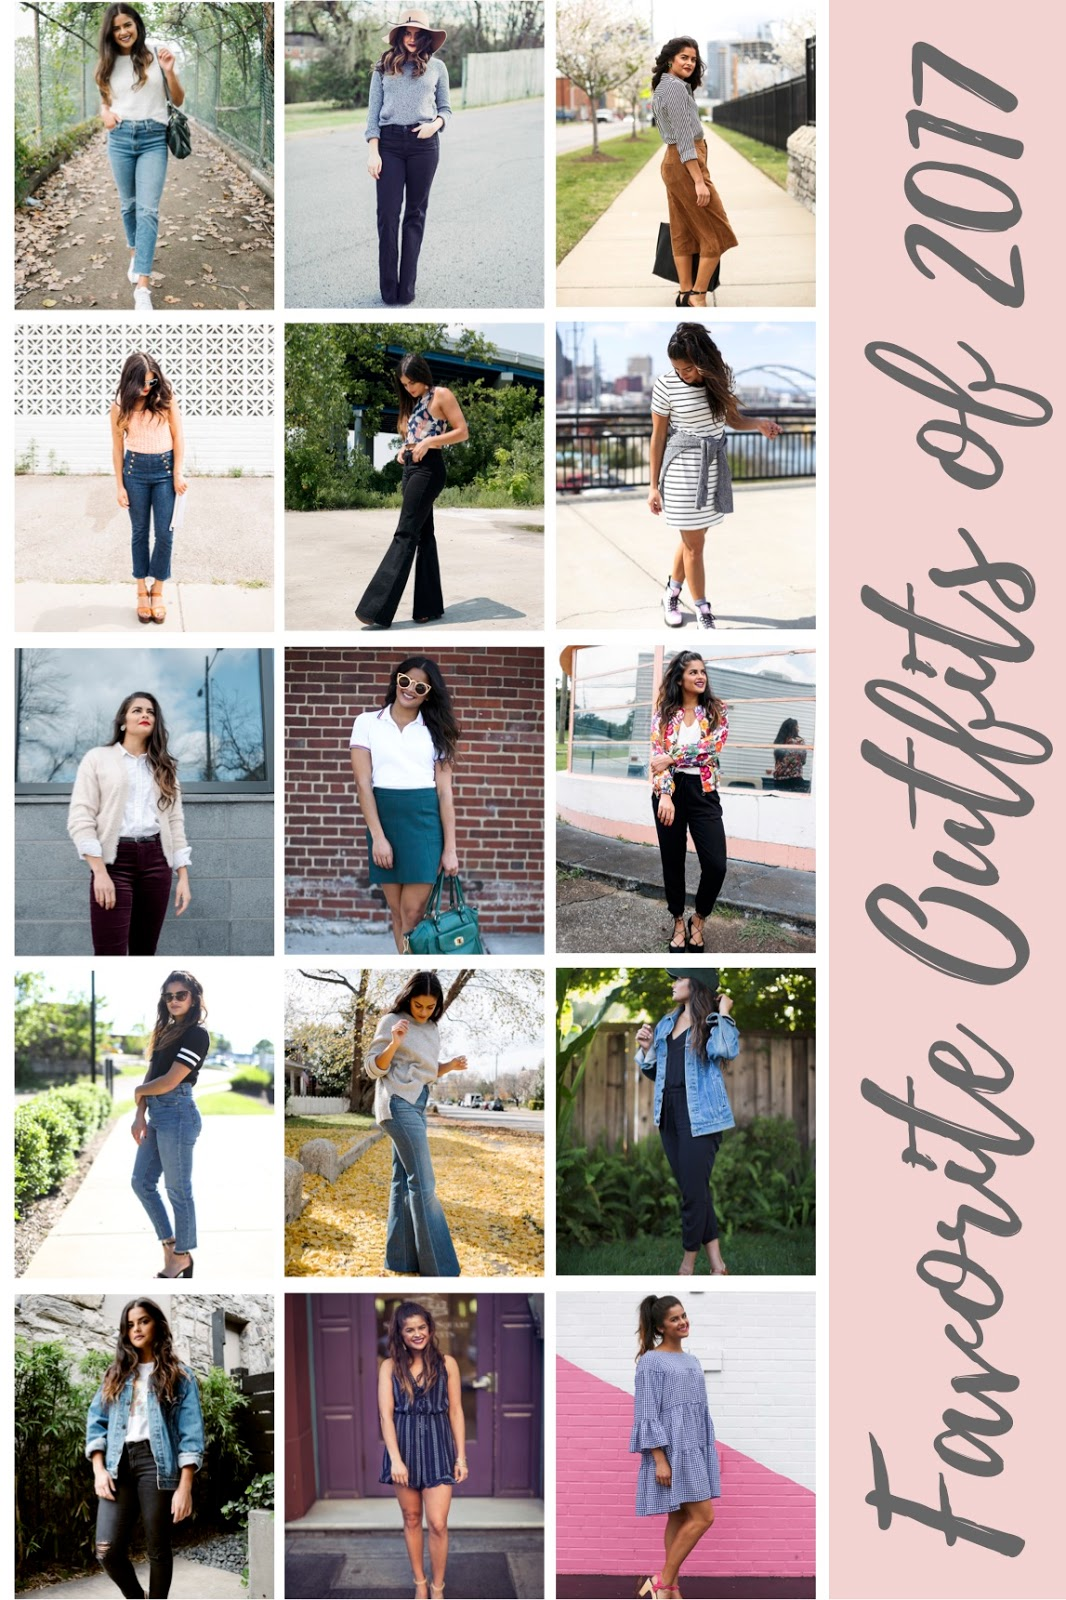 Outfits 2017 My Favorite Outfits Of 2017 Priya The Blog Life Style In